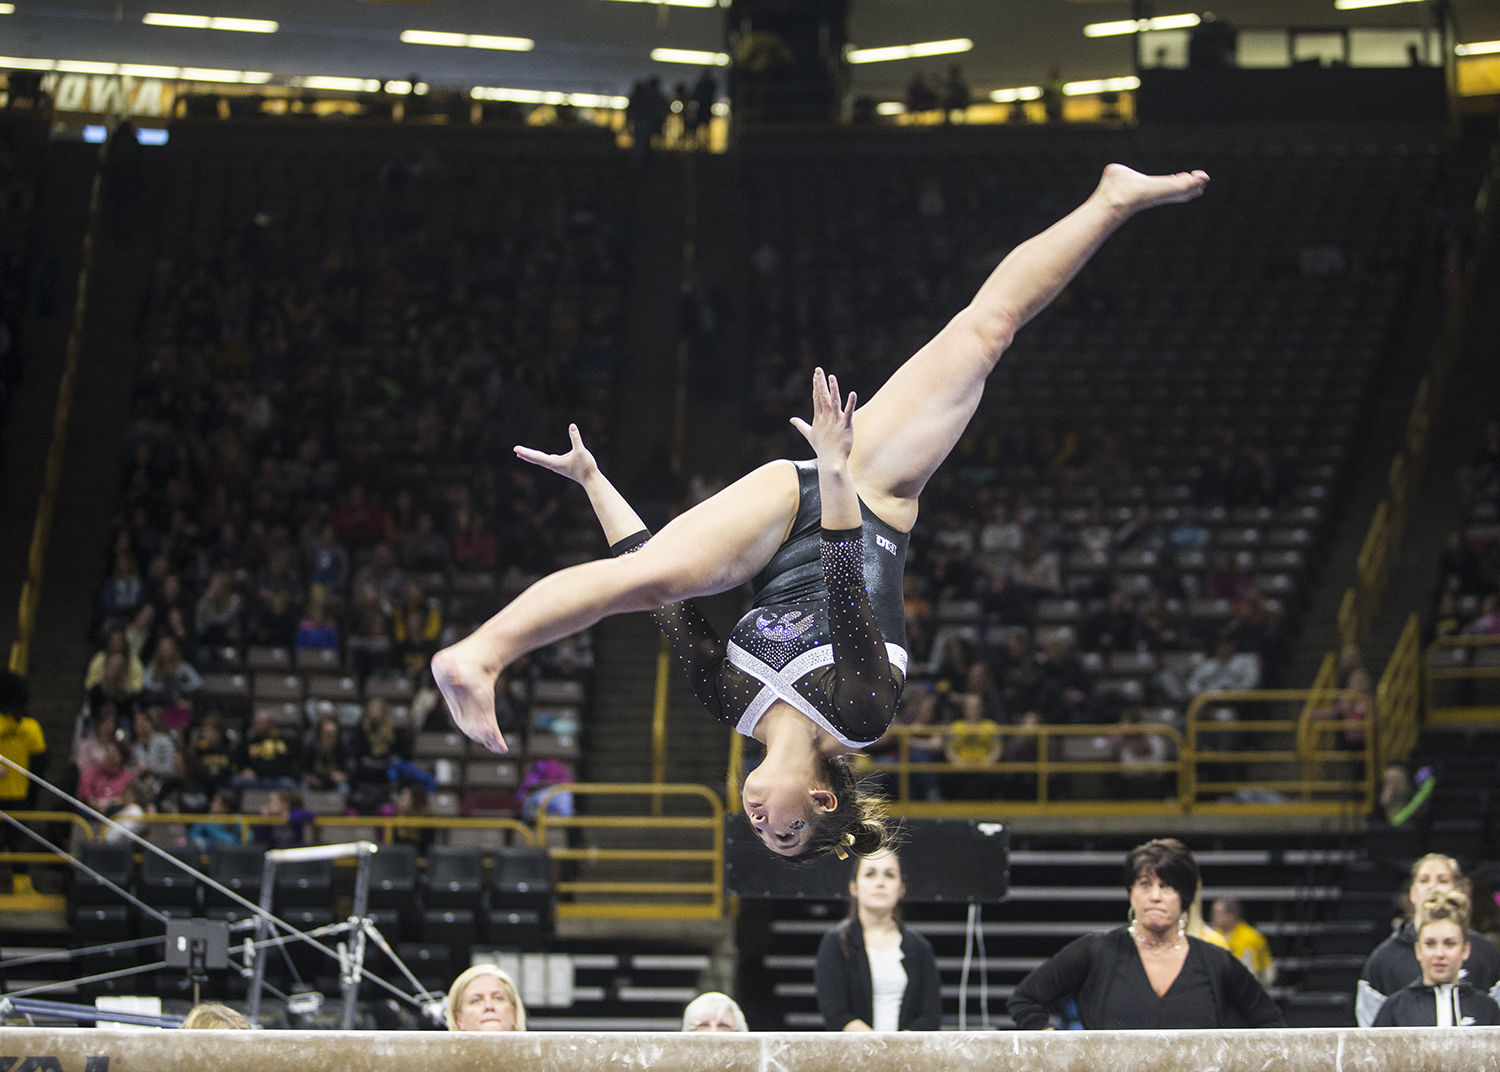 An+Iowa+gymnast+warms+up+for+the+balance+beam+event+at+a+meet+against+Rutgers+on+Saturday%2C+January+26%2C+2019.+The+Hawkeyes+defeated+the+Scarlet+Knights+194.575+to+191.675.+